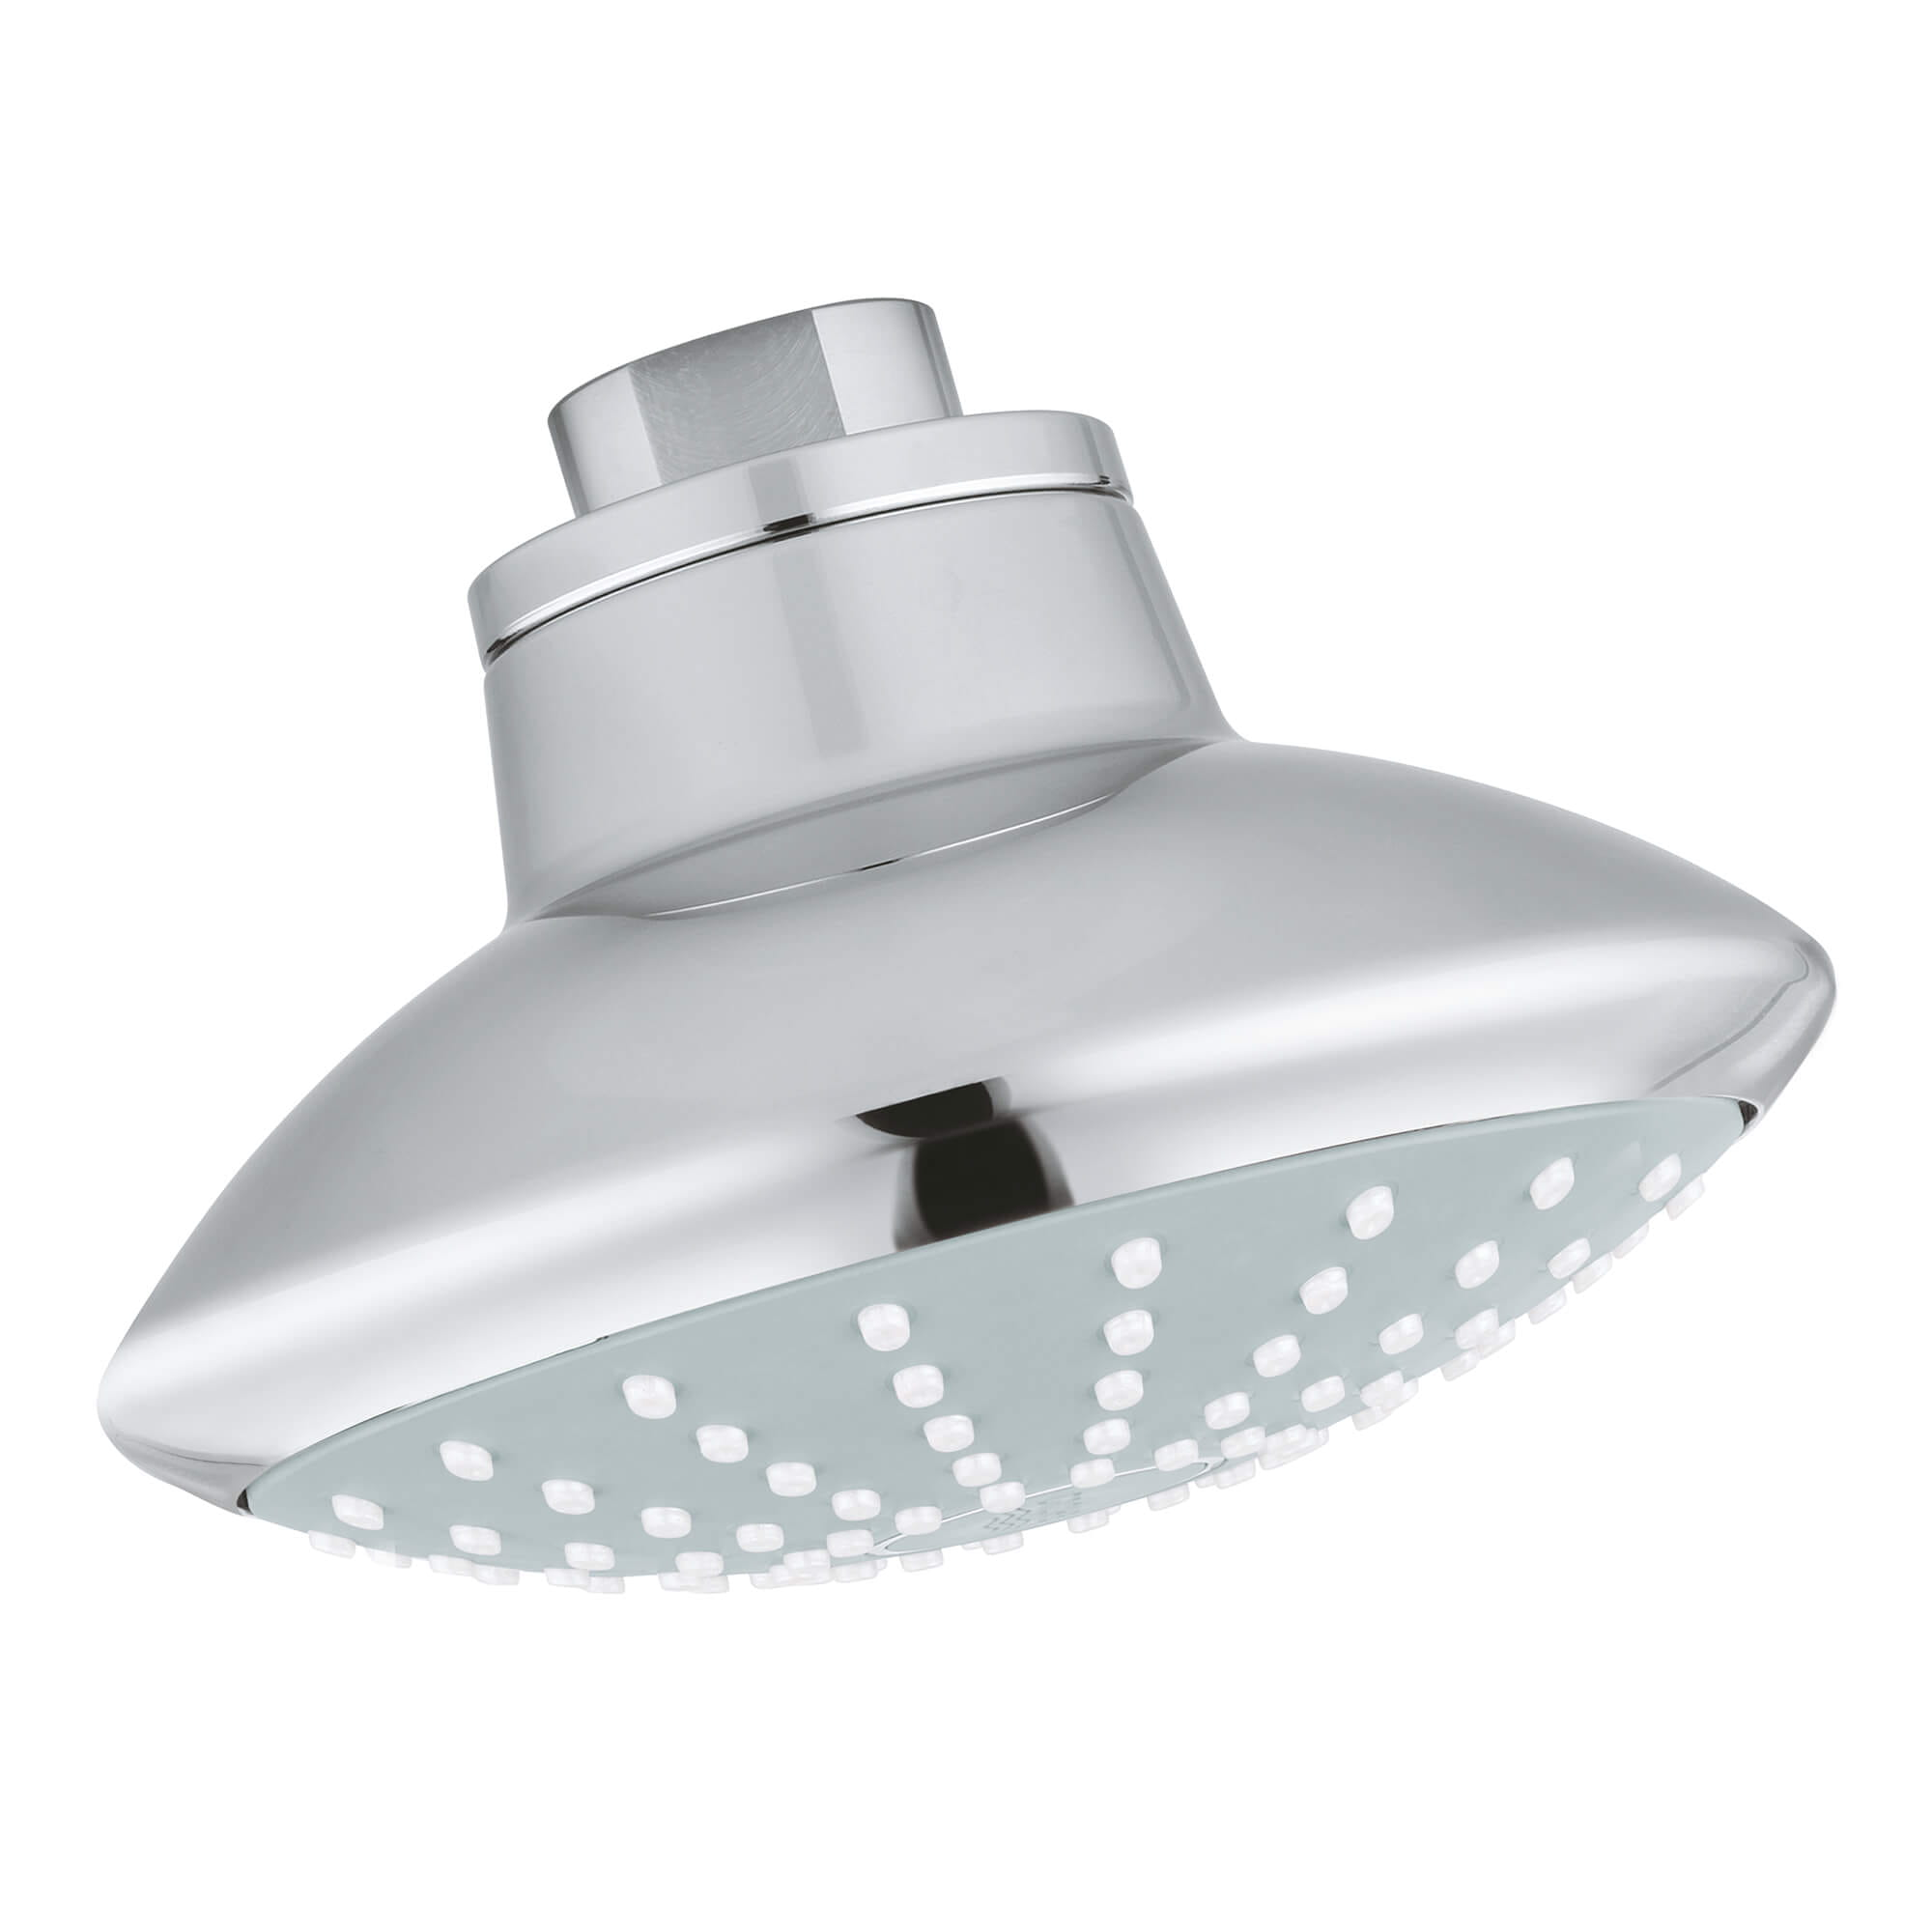 Euphoria 110 Mono 1-Spray Showerhead